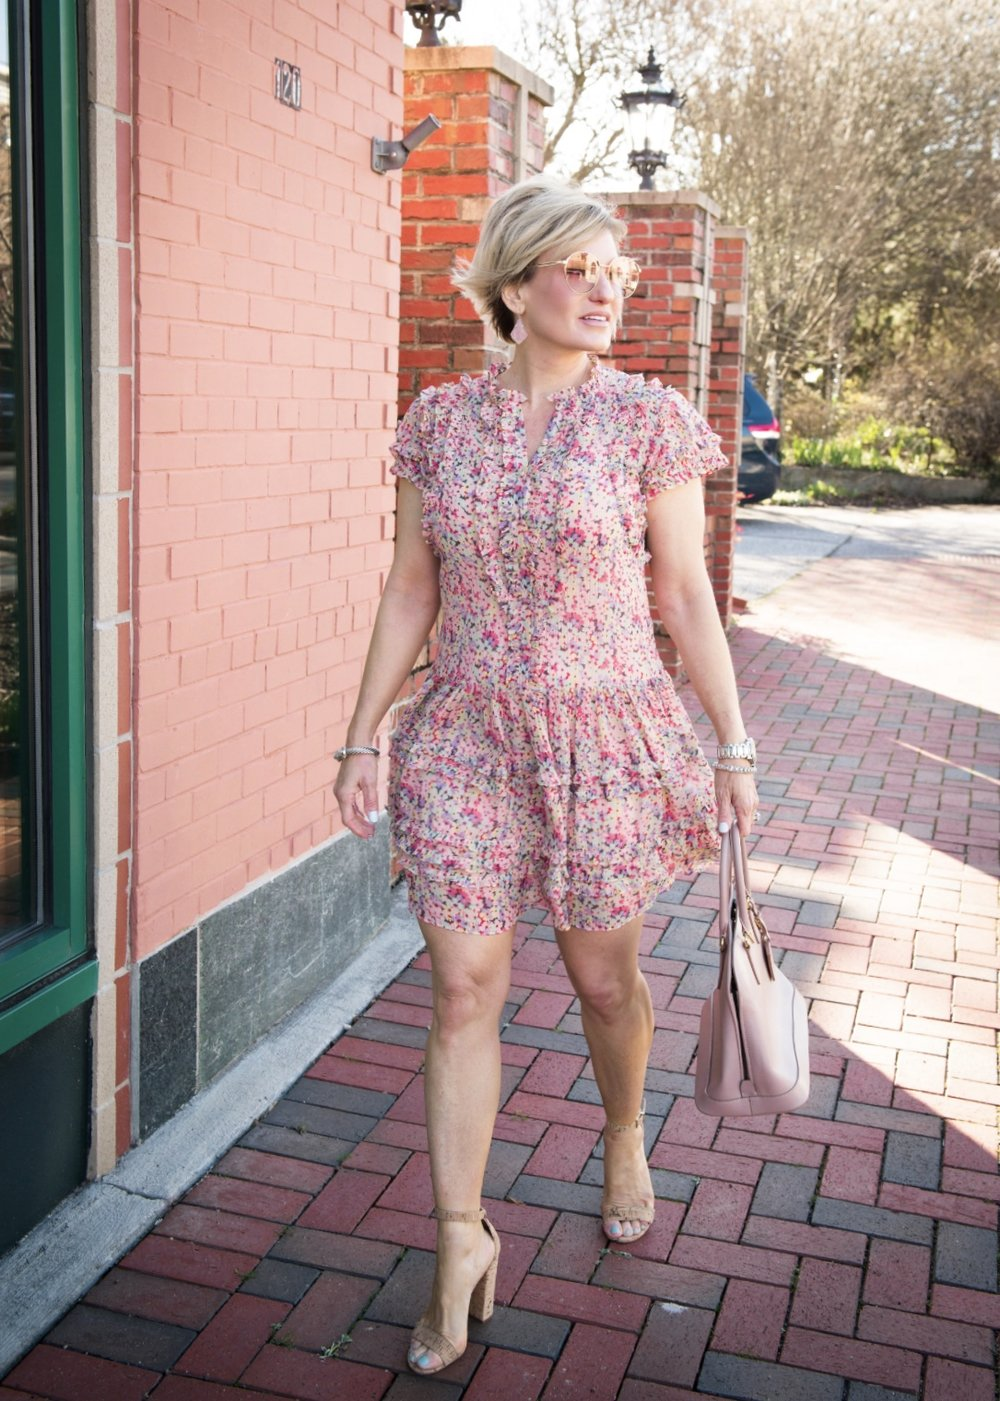 Stepping in to spring with the cutest little floral number perfect for a bridal shower, wedding or garden party. Dress:  here , shoes:  here , handbag:  here  or similar  here ; earrings:  here : sunglasses:  here ; nail polish:  here .